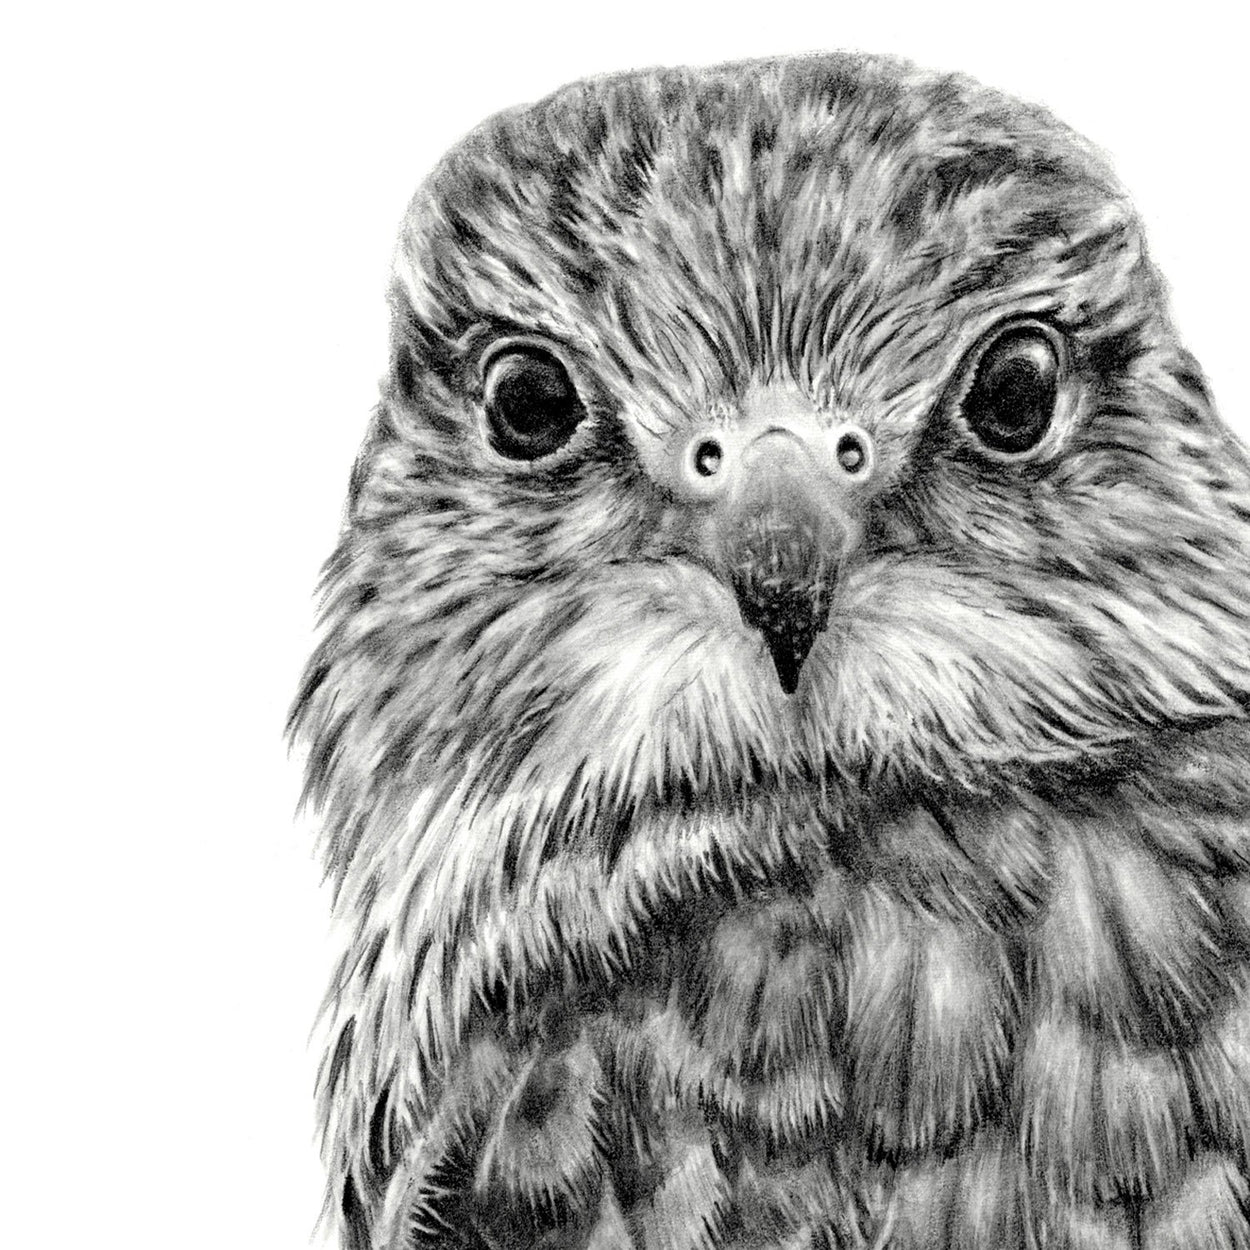 Merlin Bird Drawing Close-up 1 - The Thriving Wild